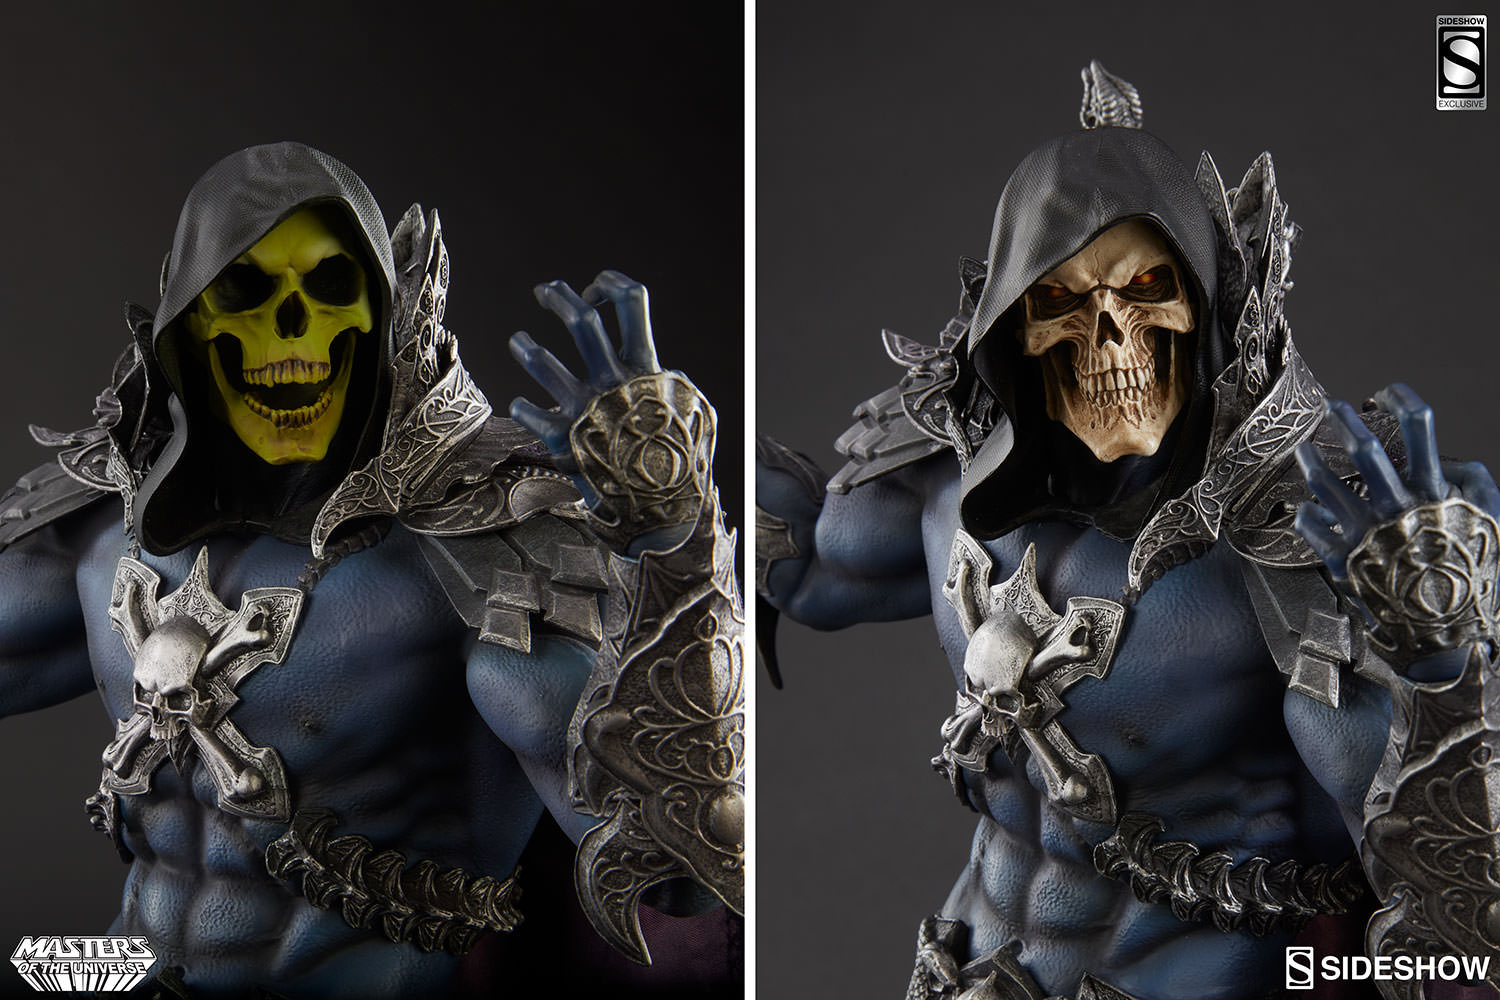 New Photos Of The Skeletor Statue From Sideshow He Man World